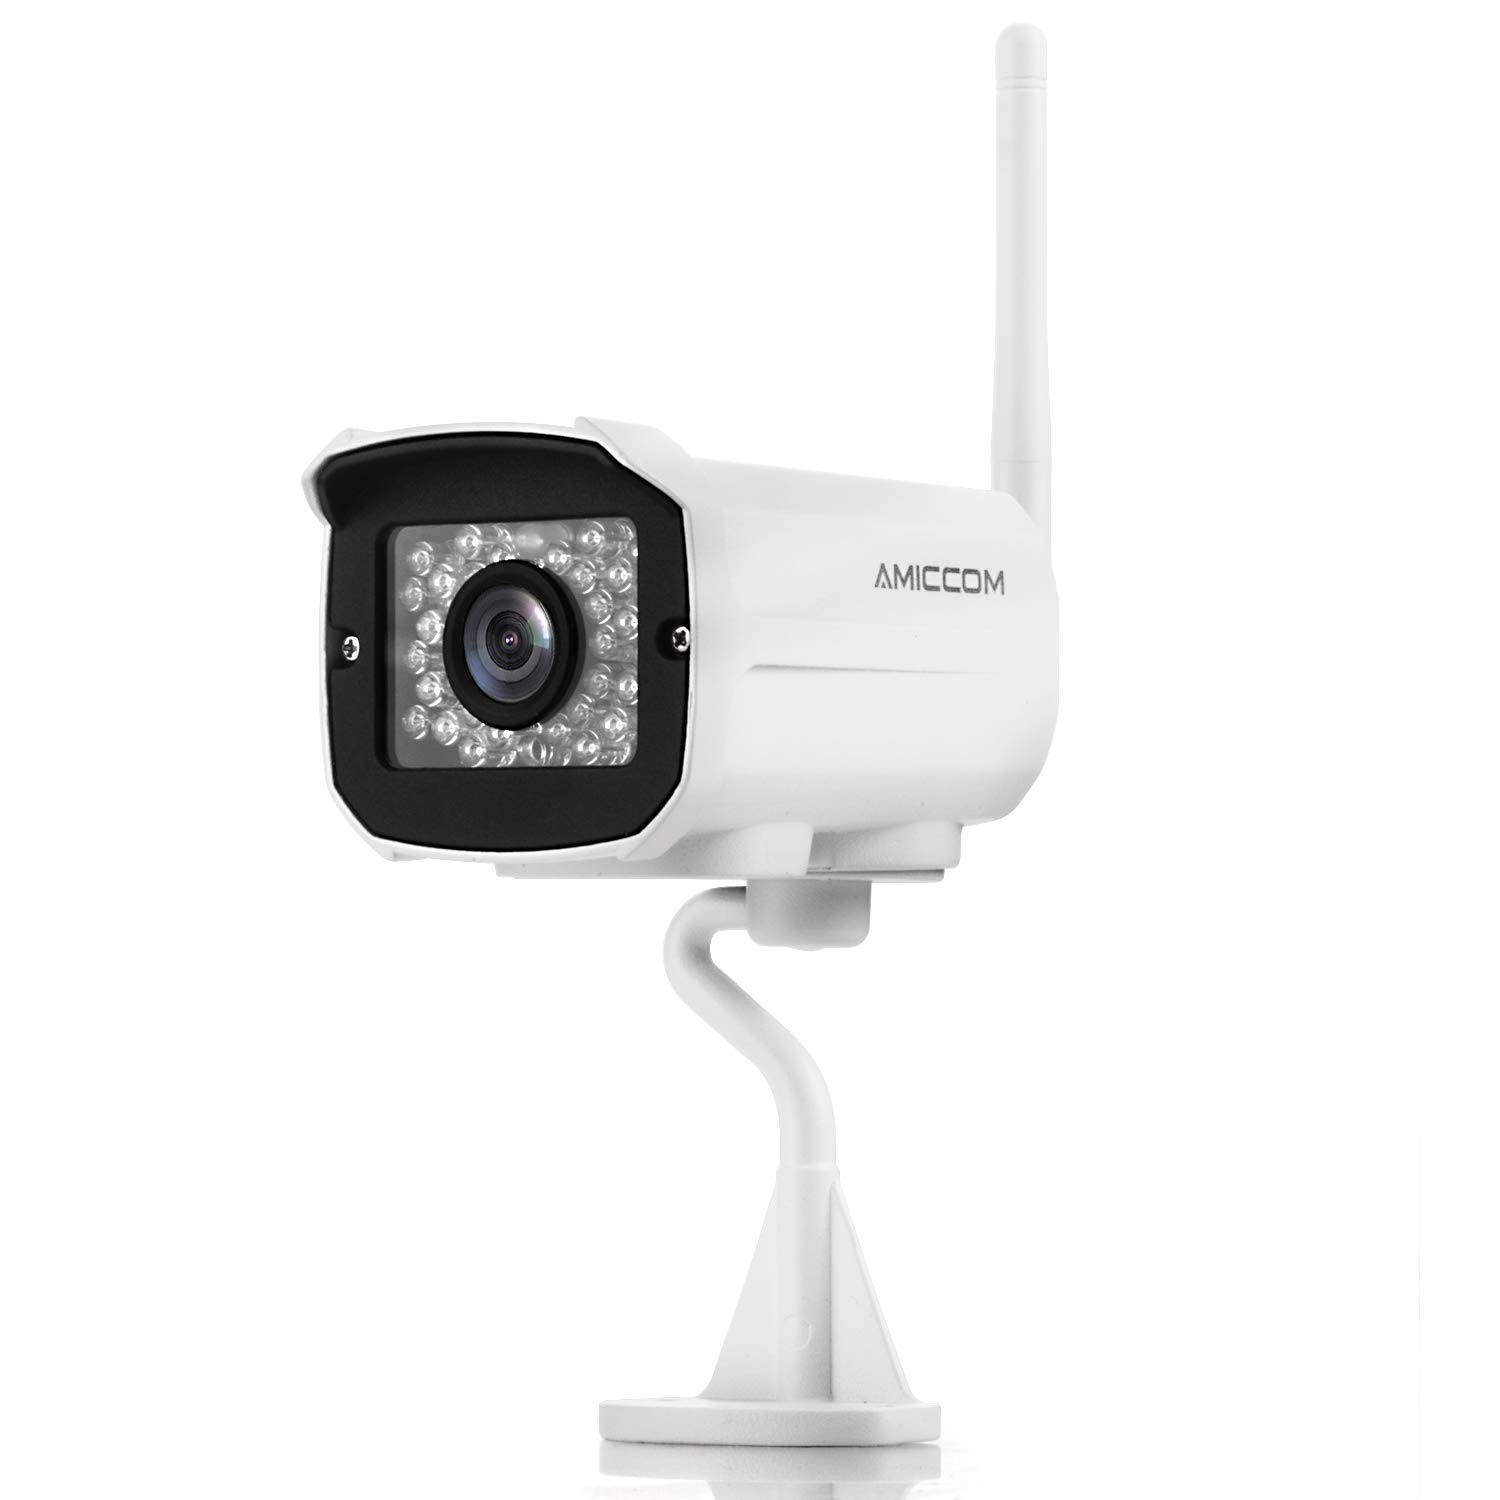 Hd Poe Camera Ip 720p 960p 1080p Mini Home Security Camera 2mp Outdoor Real Time Monitoring By Internet H.264 Onvif P2p Cctv Cam Ture 100% Guarantee Security & Protection Surveillance Cameras